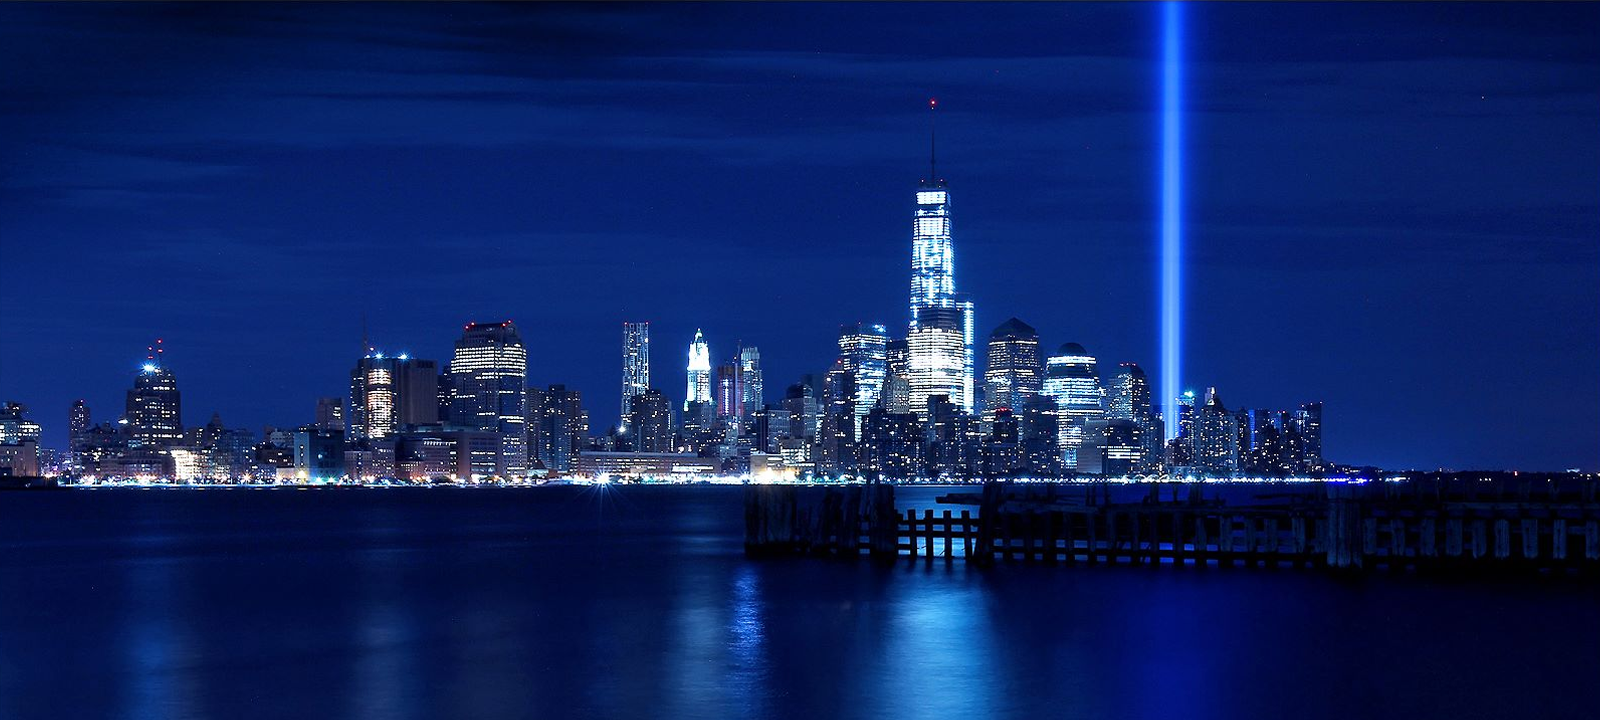 September 11 memorial lights up the Manhattan sky